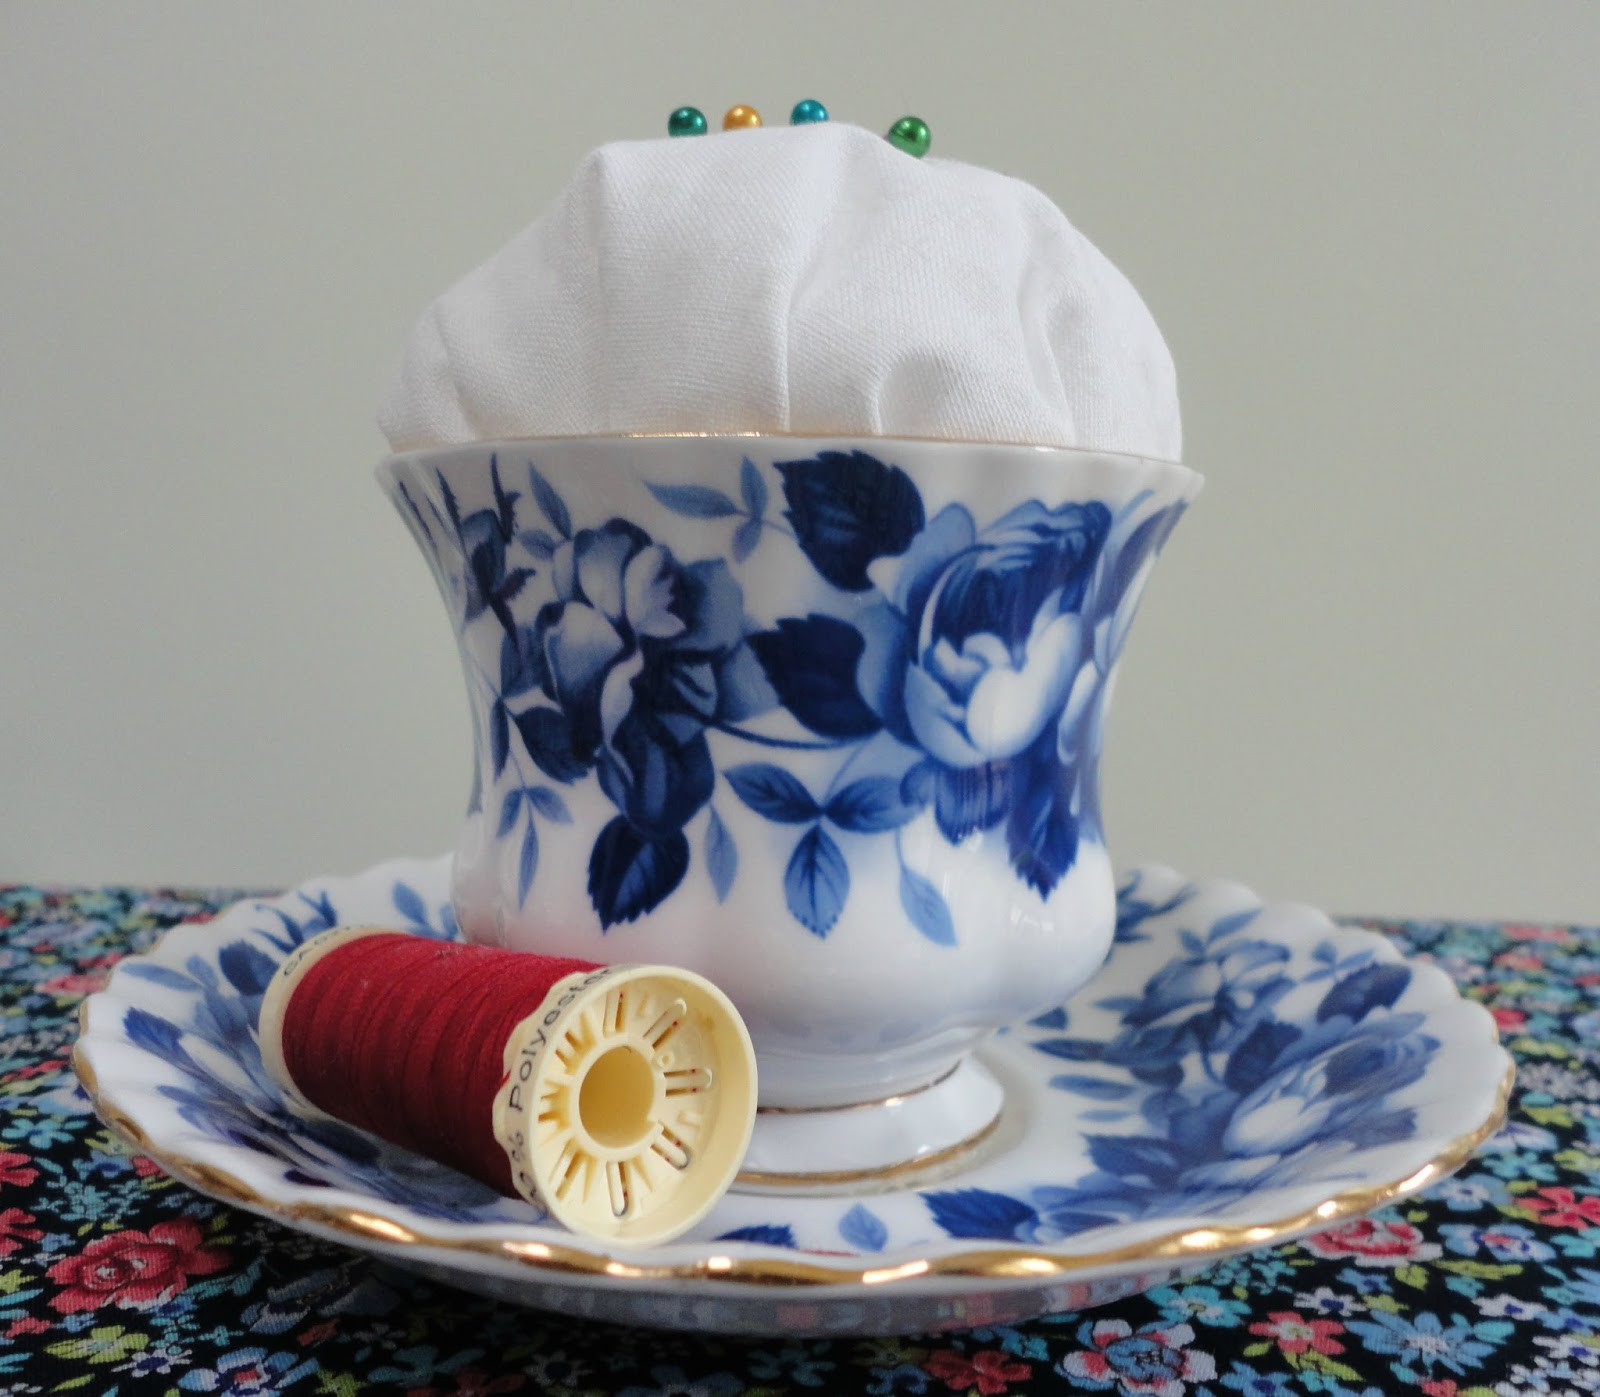 A vintage teacup pincushion